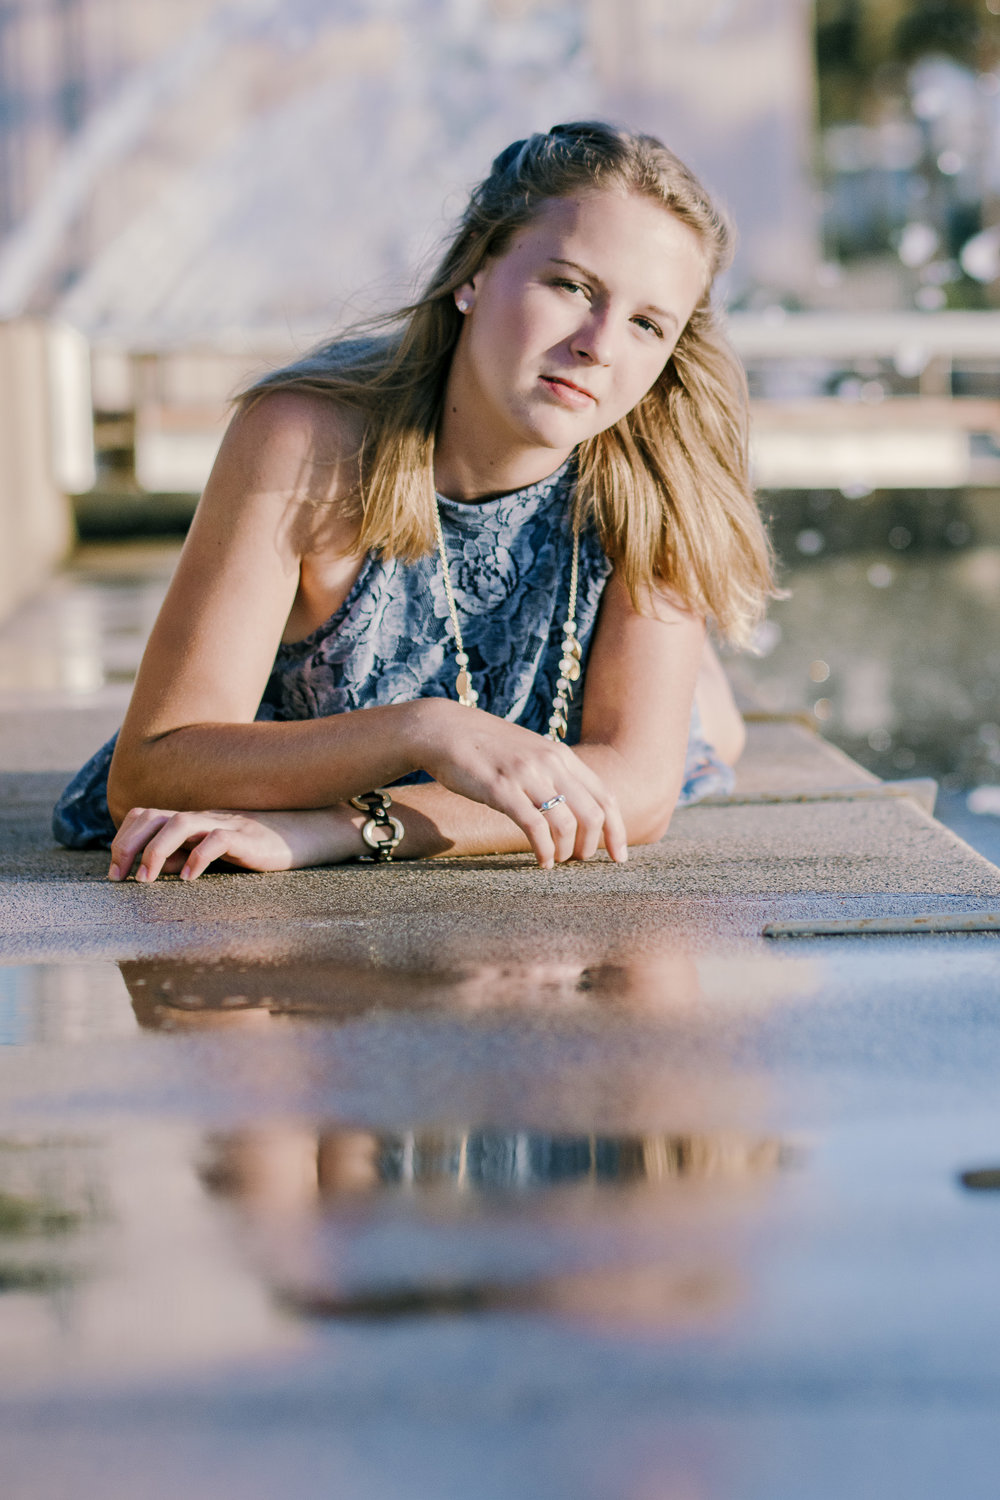 shawna-parks-photo-Libby-teen-portraits-024.jpg